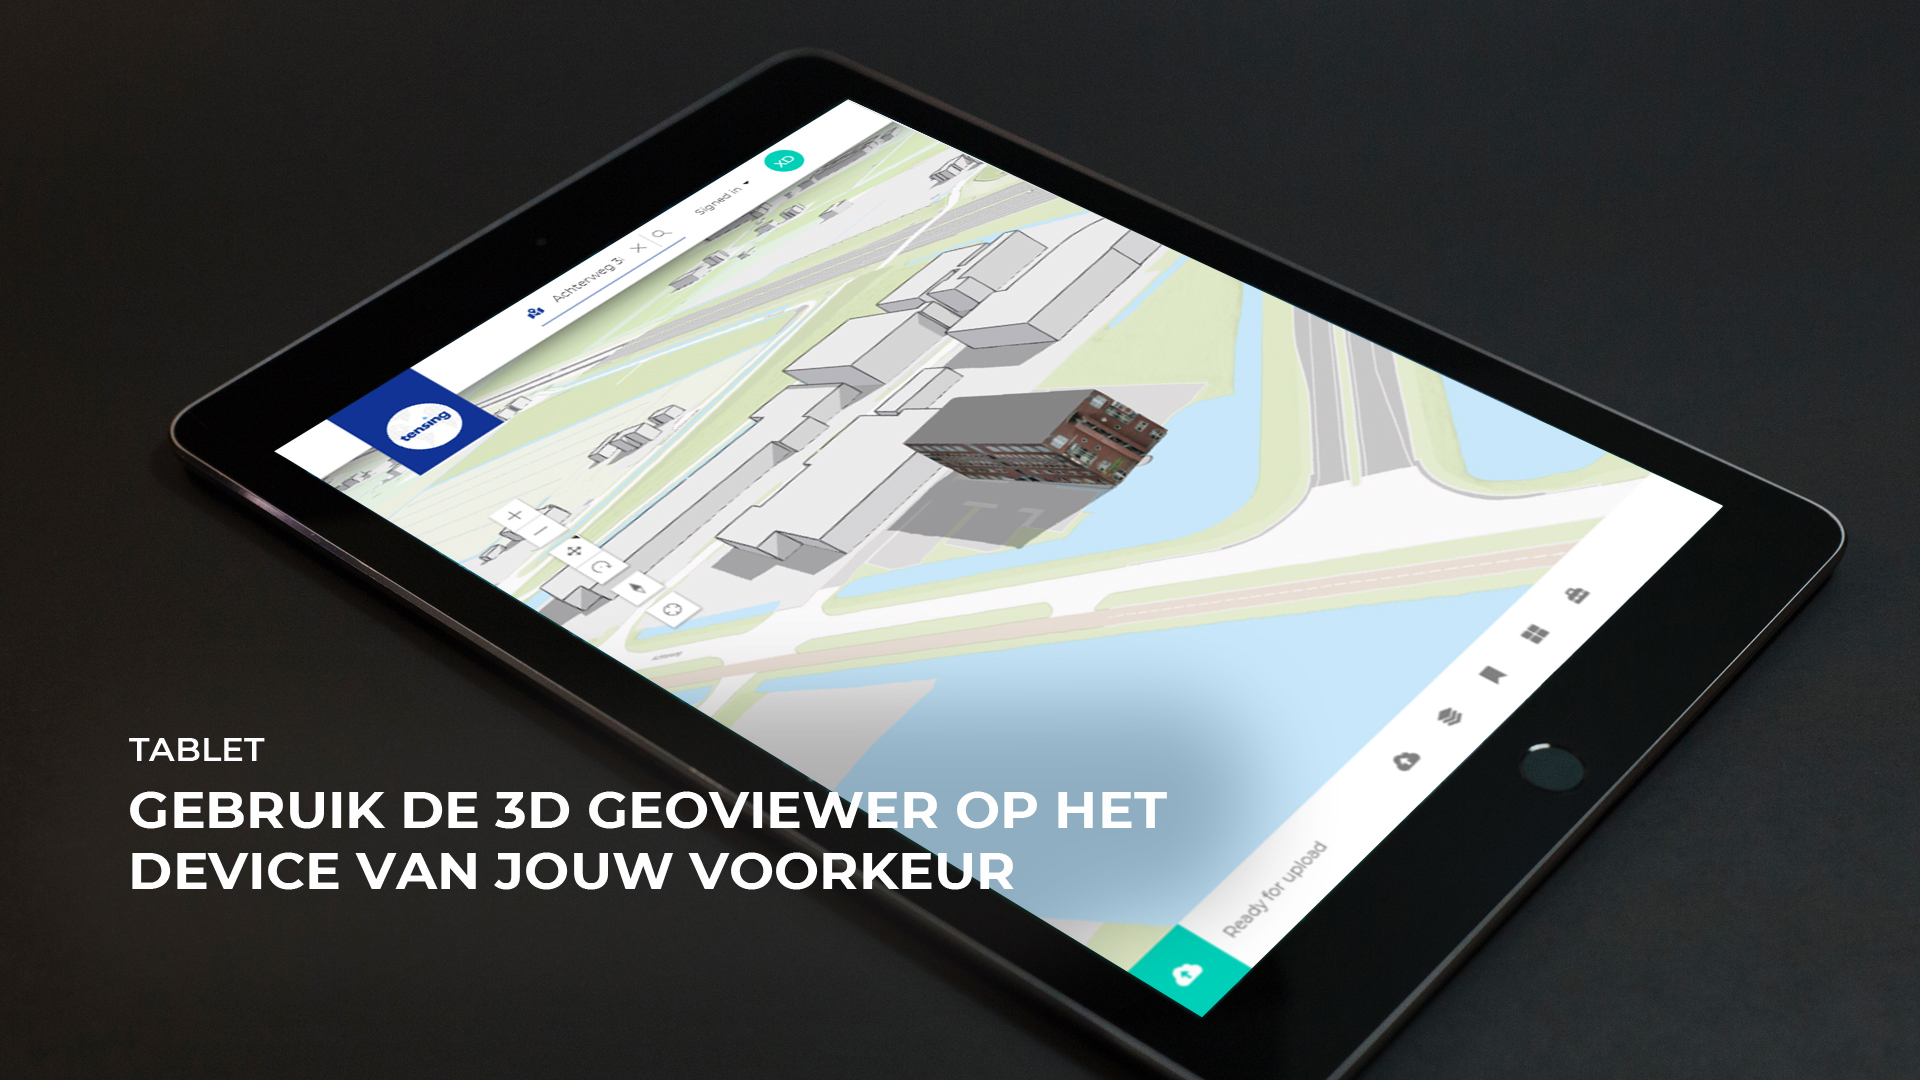 screenshot-3d-geoviewer-Tensing-upload-tablet-portrait2